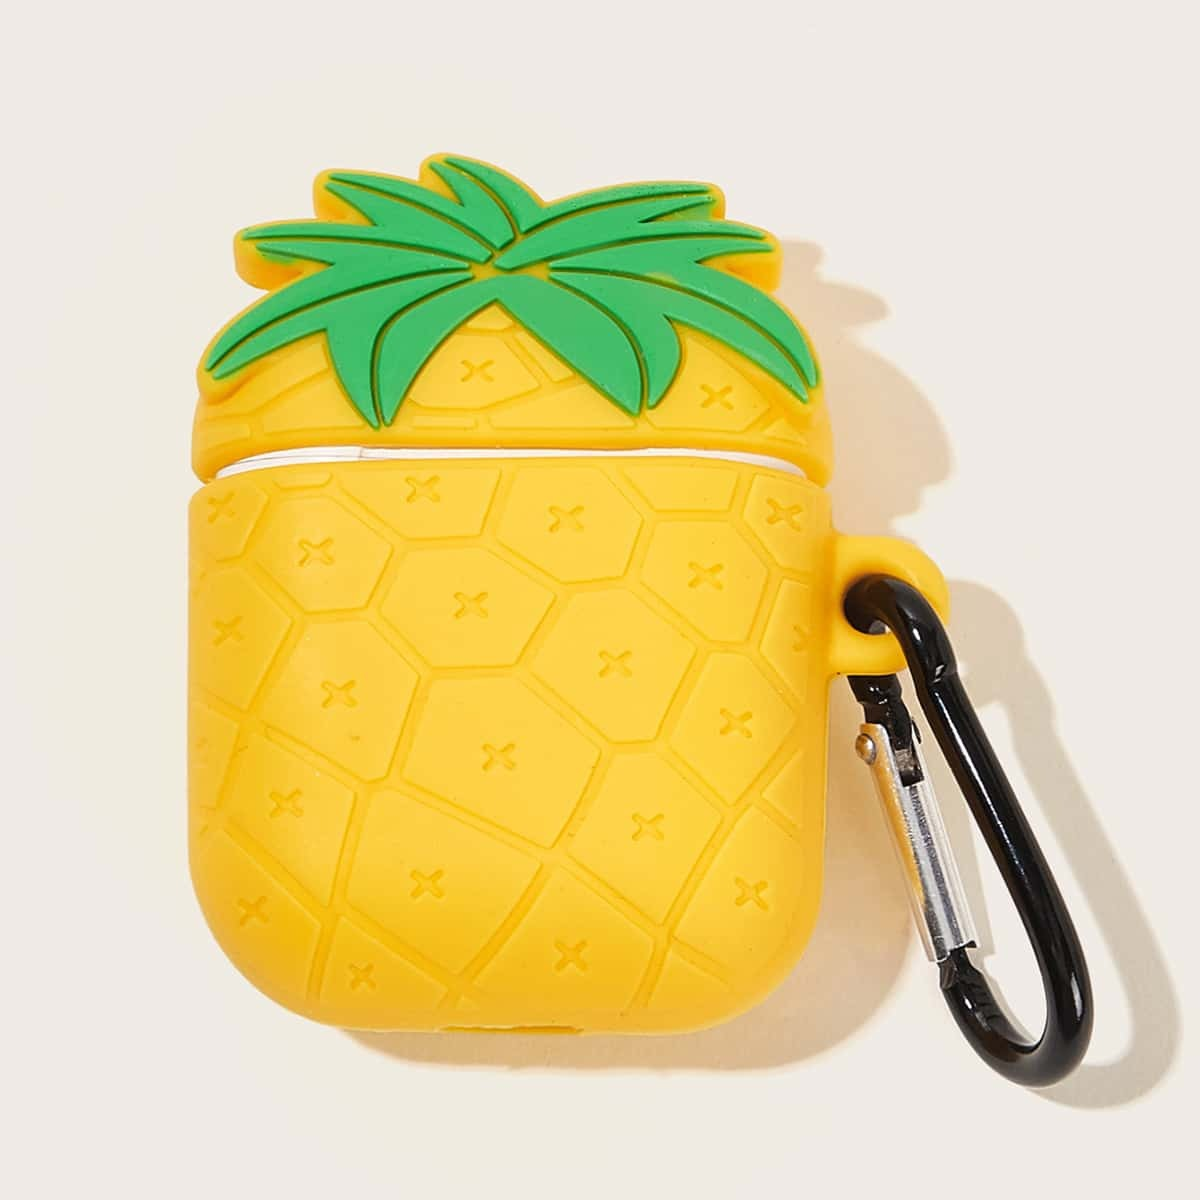 Pineapple Design Airpods Oplader Box Protector